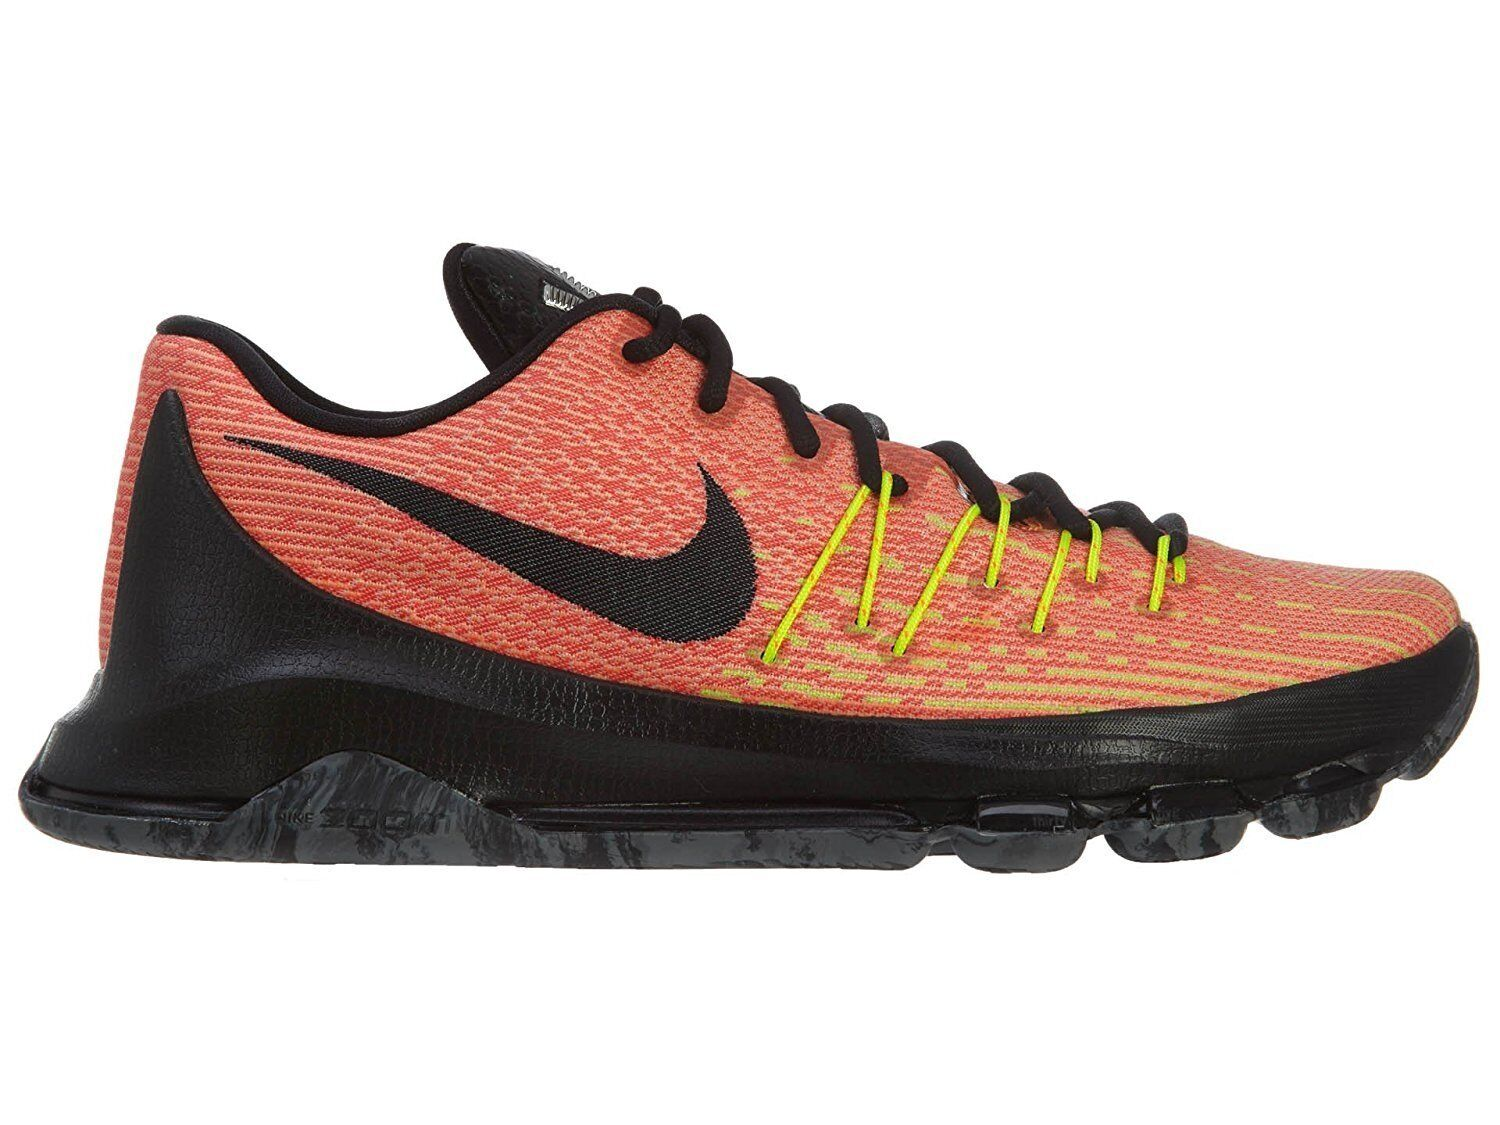 NEW Men's Nike KD 8 Shoes Sneakers Size: 11